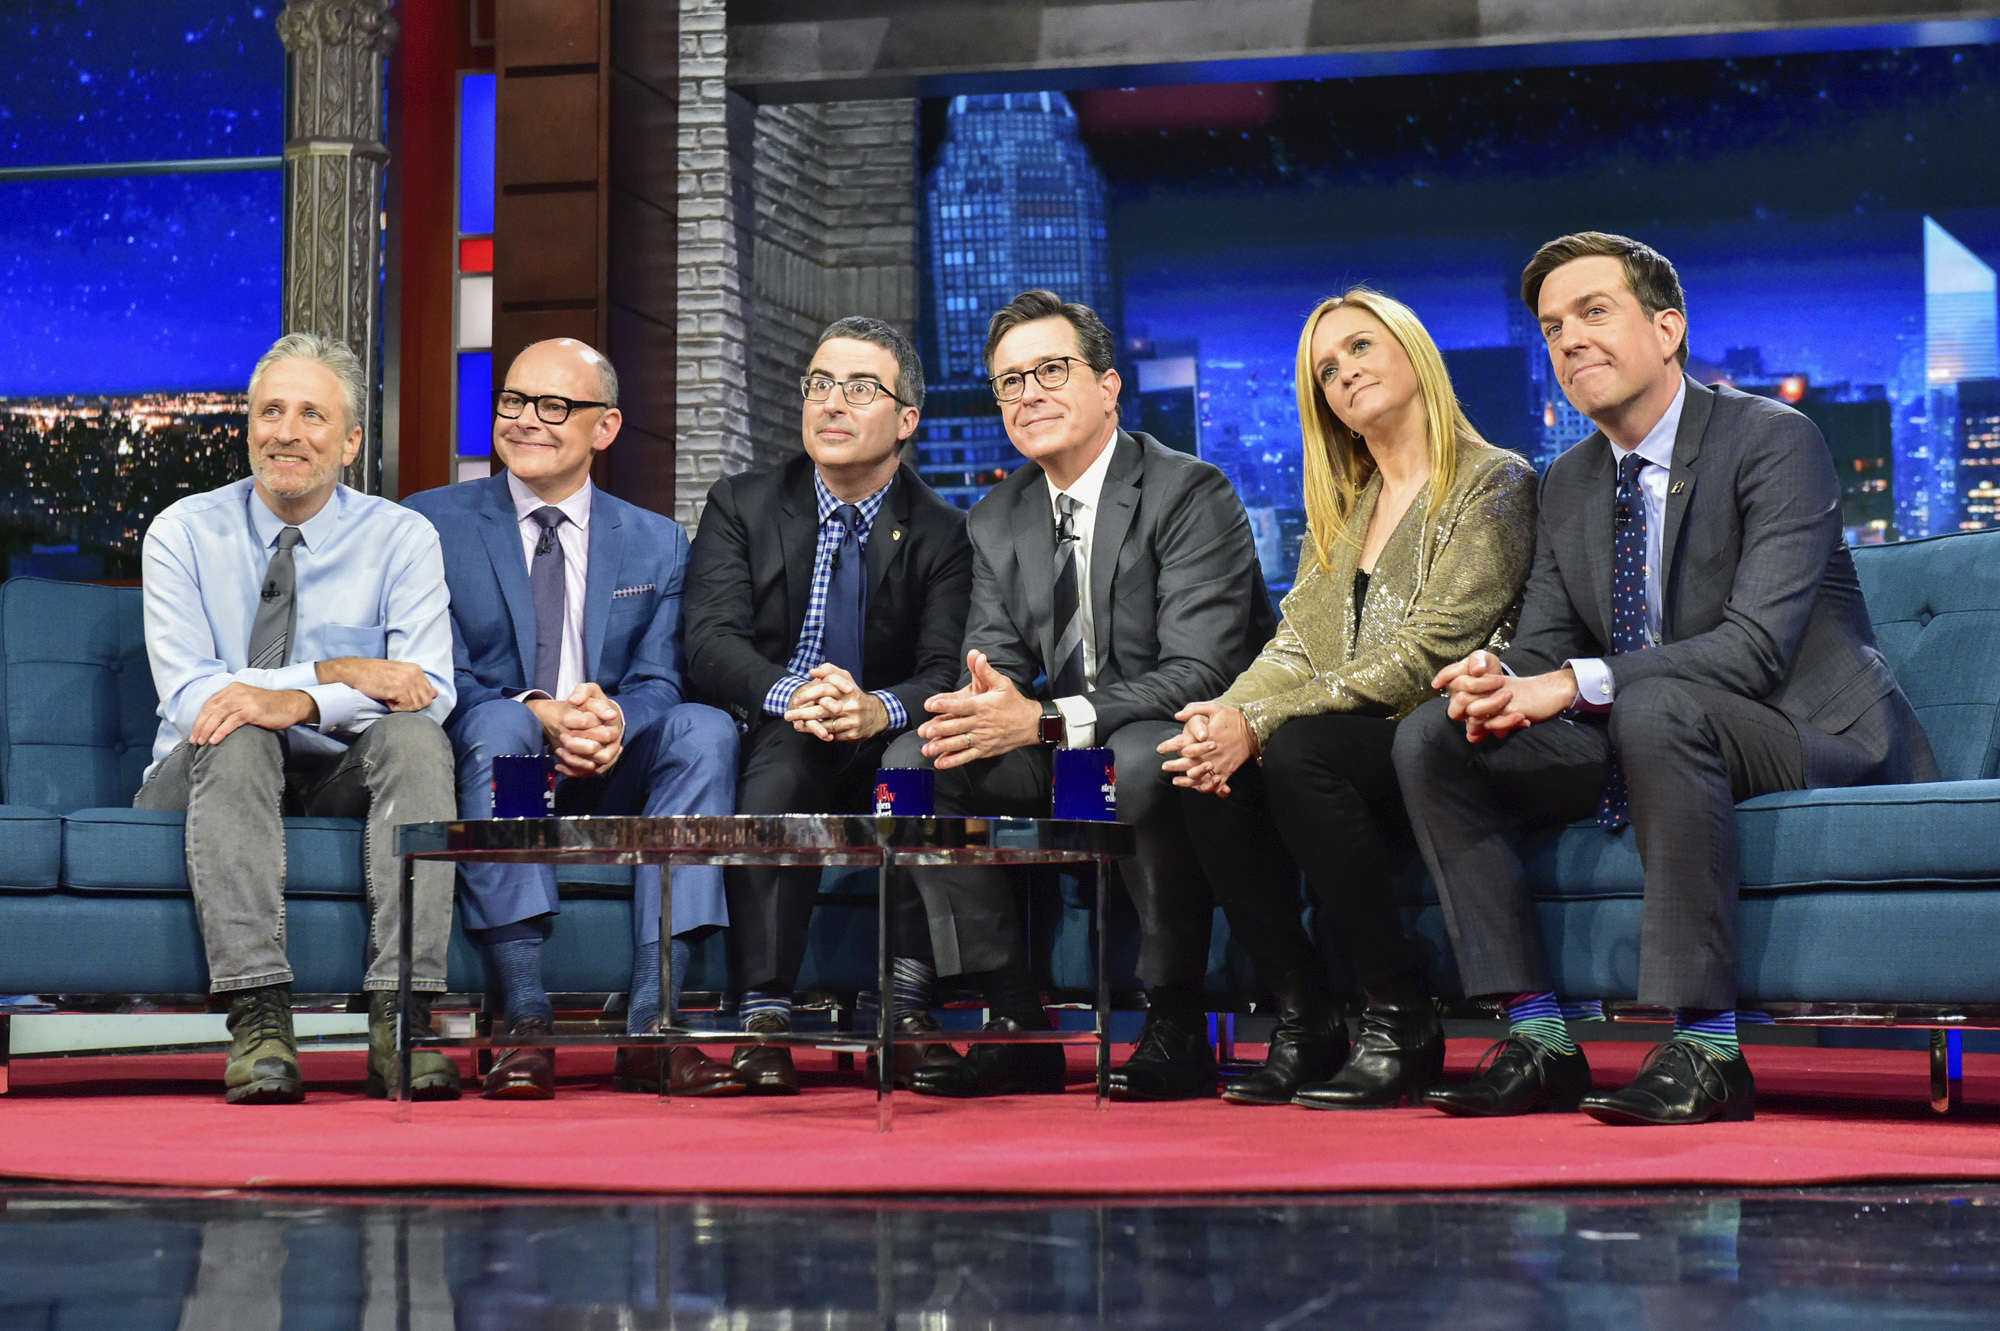 Stephen Colbert with guests Jon Stewart, Rob Corddry, John Oliver, Samantha Bee, and Ed Helms during  The Late Show with Stephen Colbert,  on May 9, 2017, in New York.